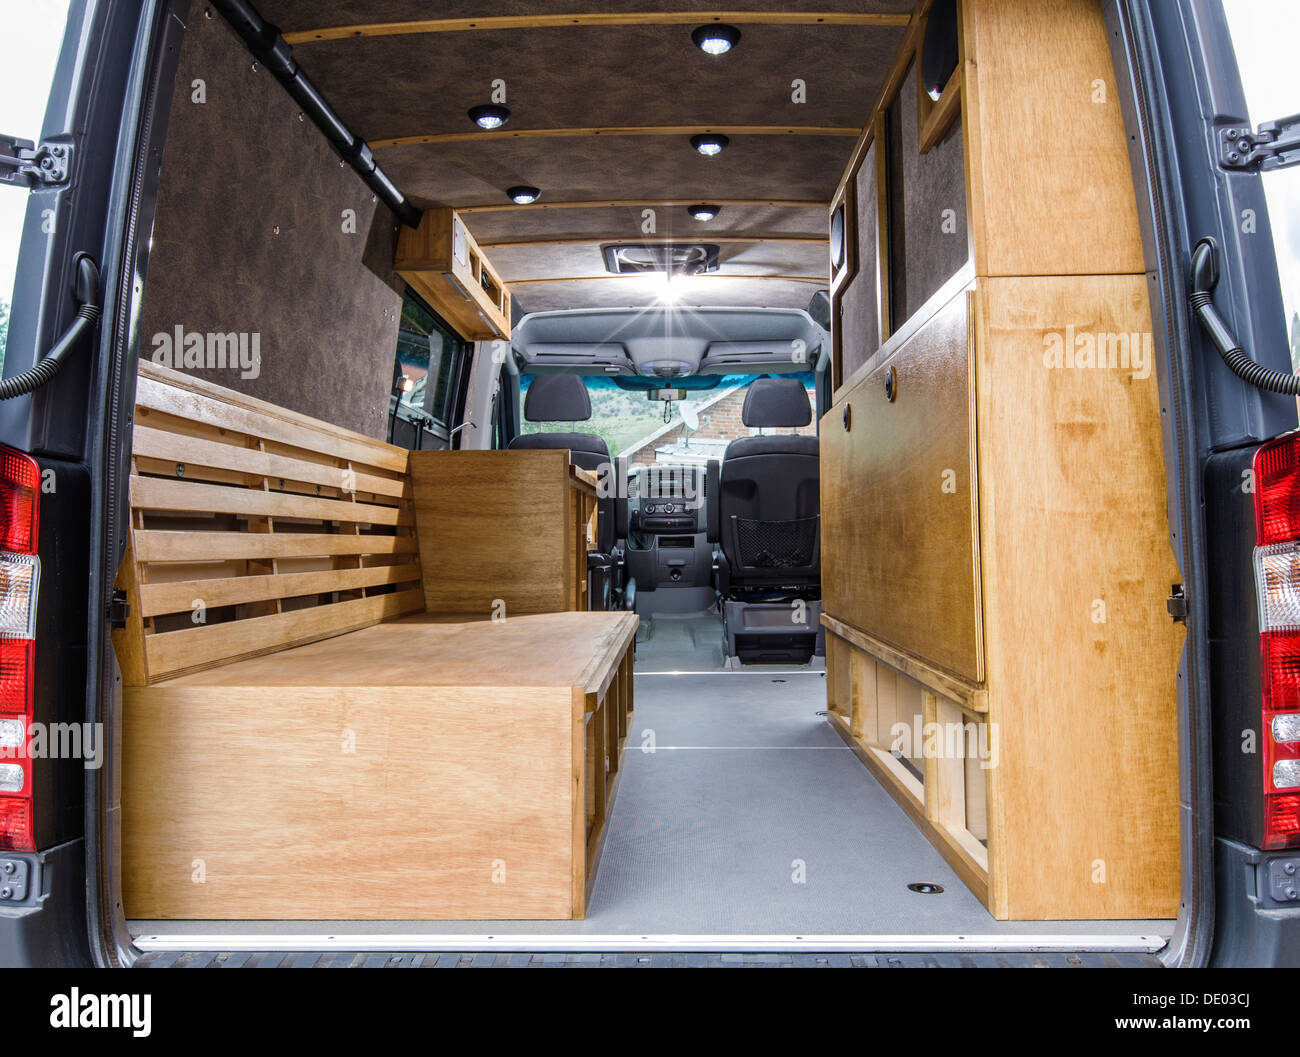 Interior View Of Mercedes Benz Sprinter Cargo Van 2500, Being Customized As  A Camper